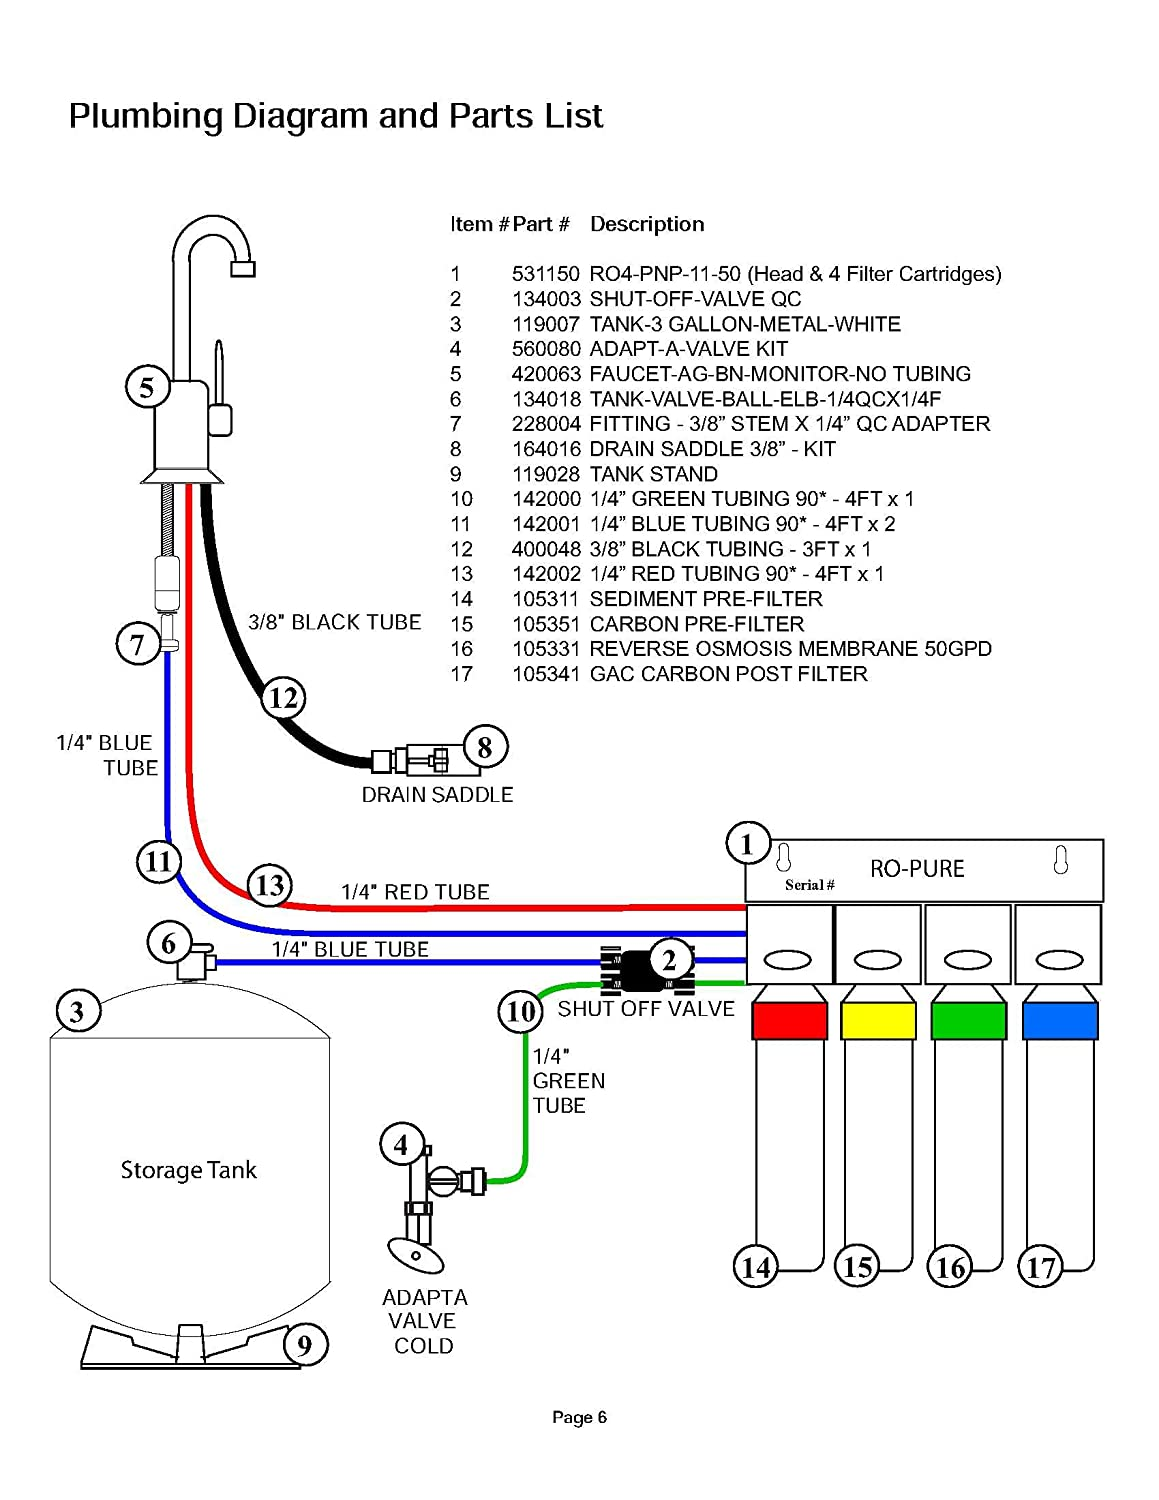 Premier Water Systems Installation Diagram - Electrical Work Wiring ...